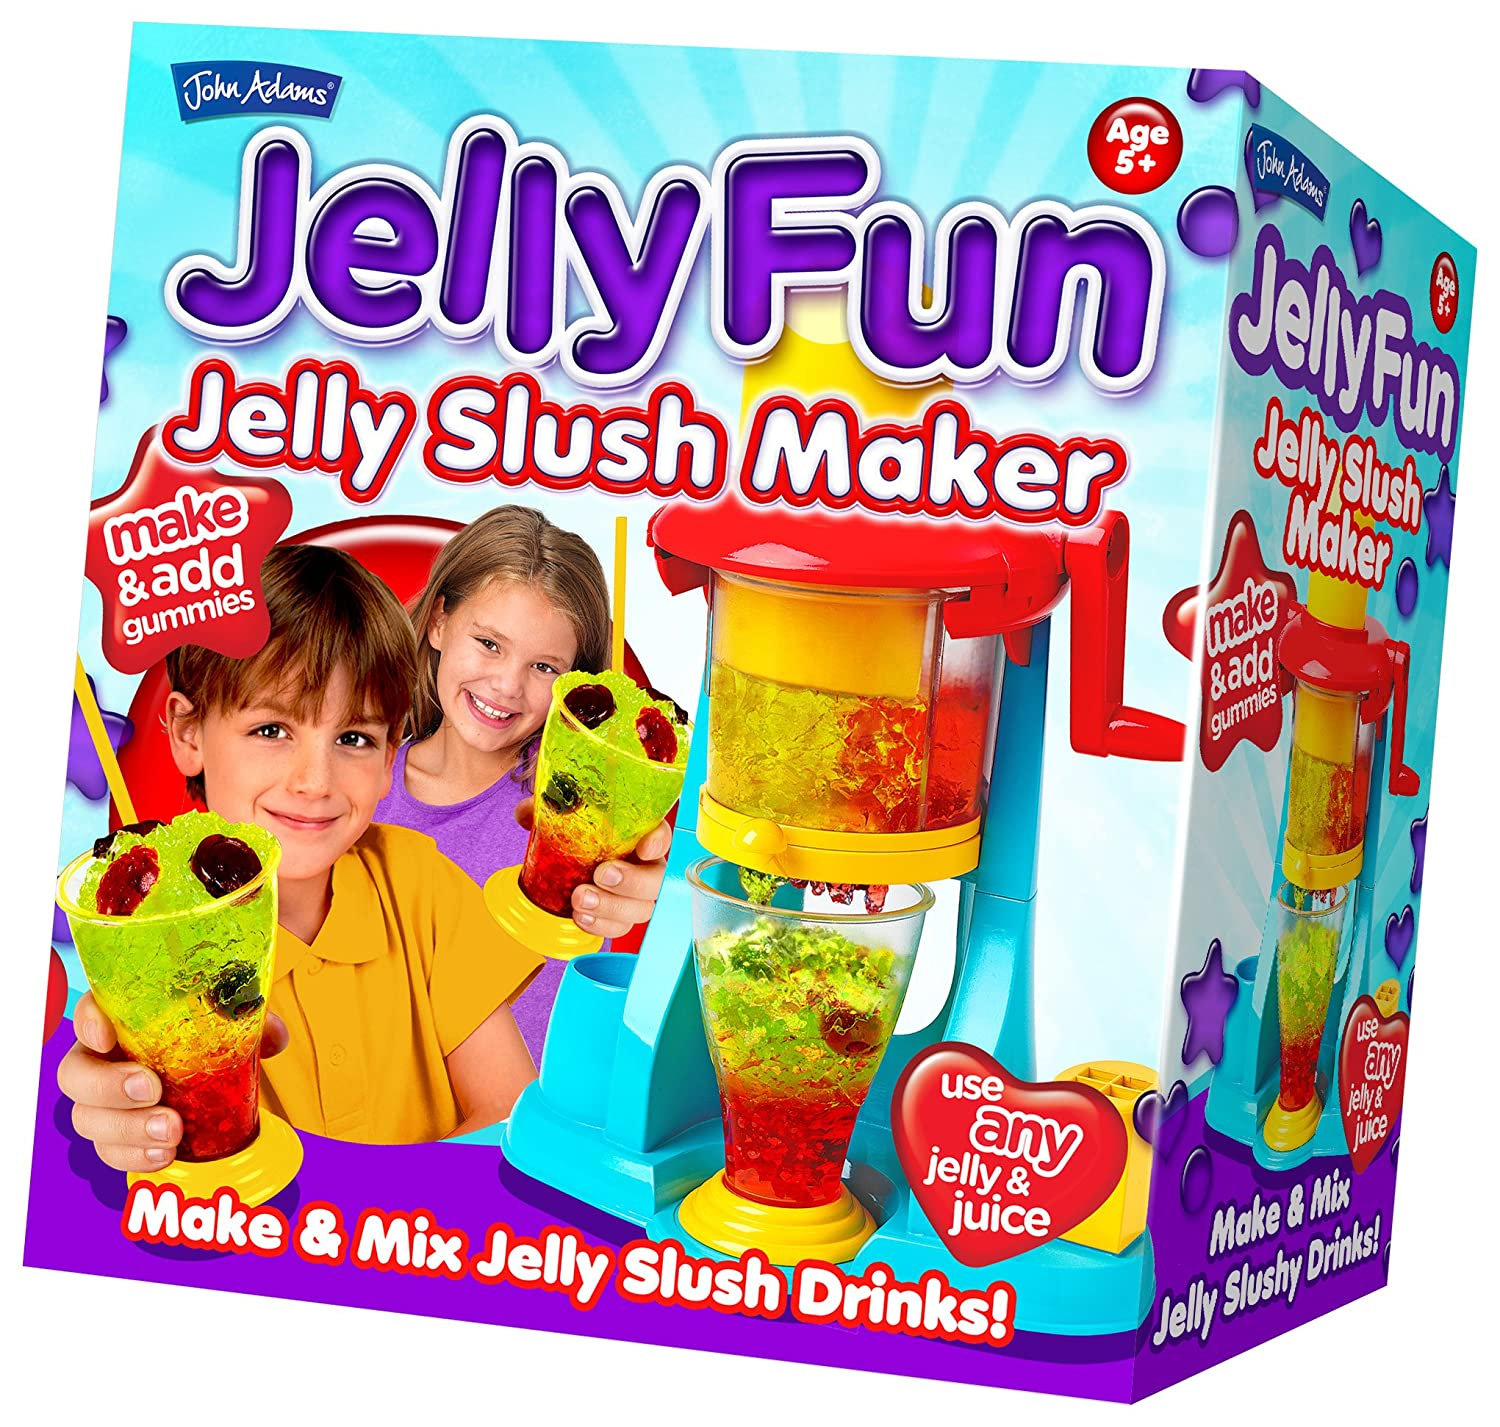 John Adams Jelly Fun John Adams Amazon Toys & Games